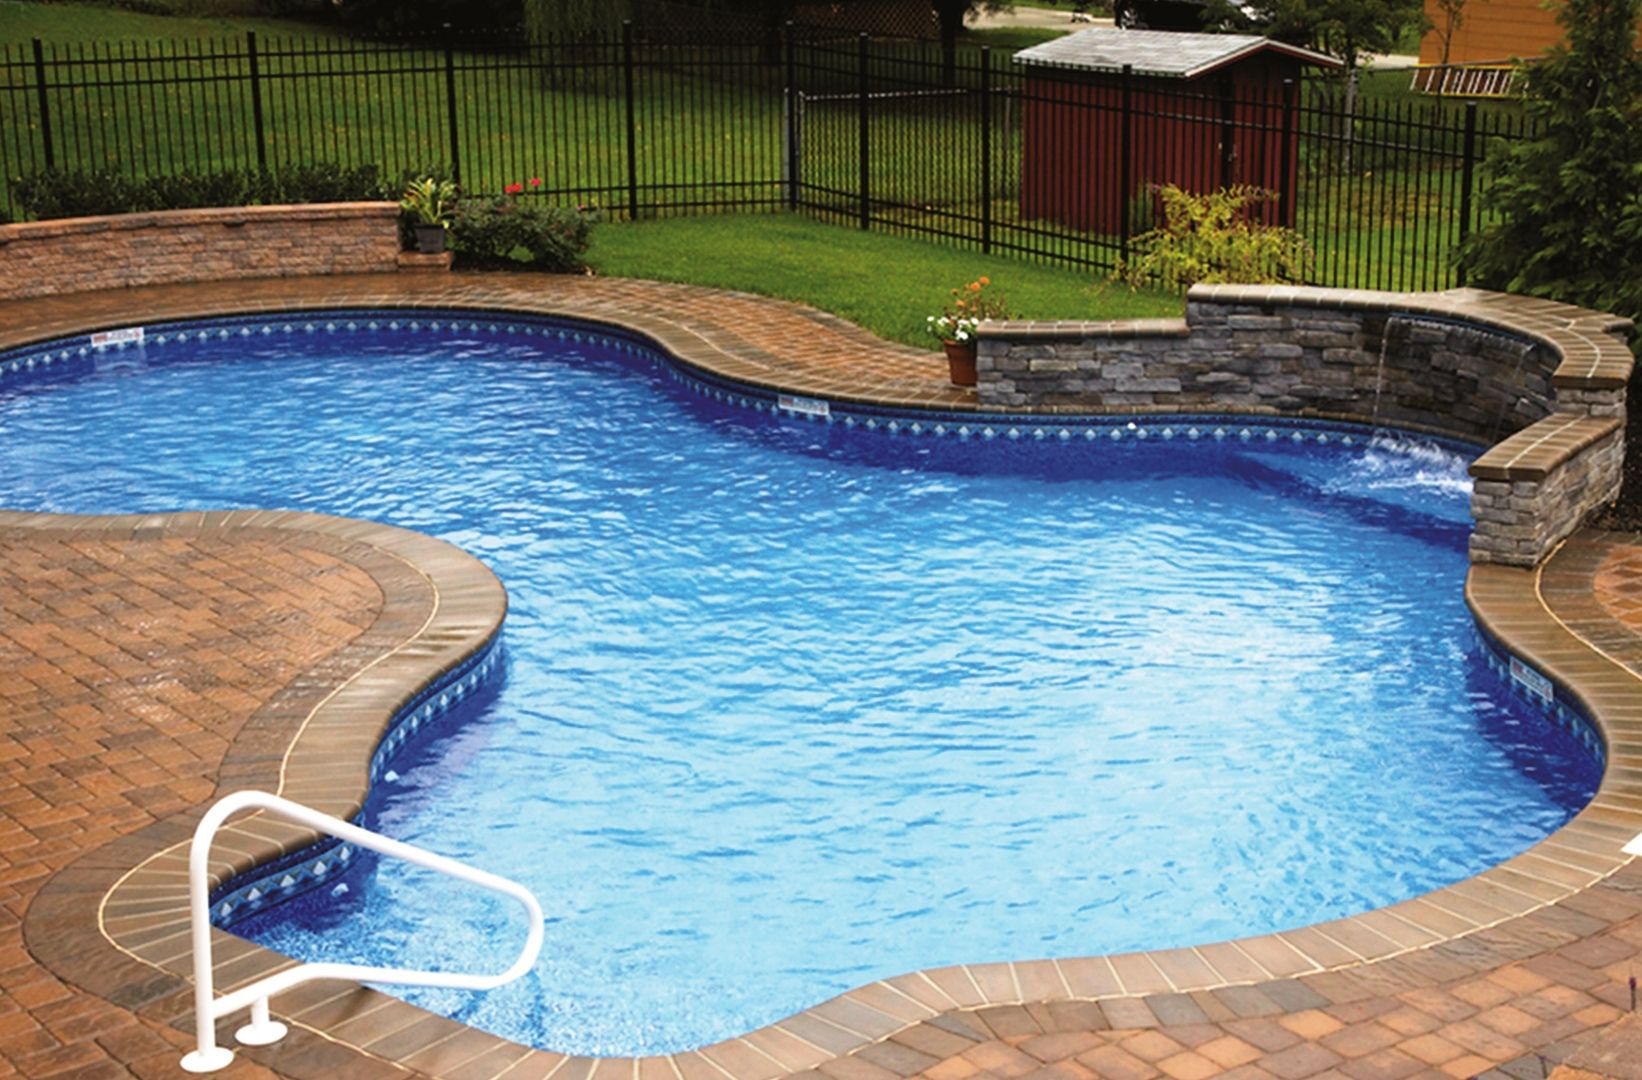 Back yard swimming pool ideas swimming pool design for Garden pool plans